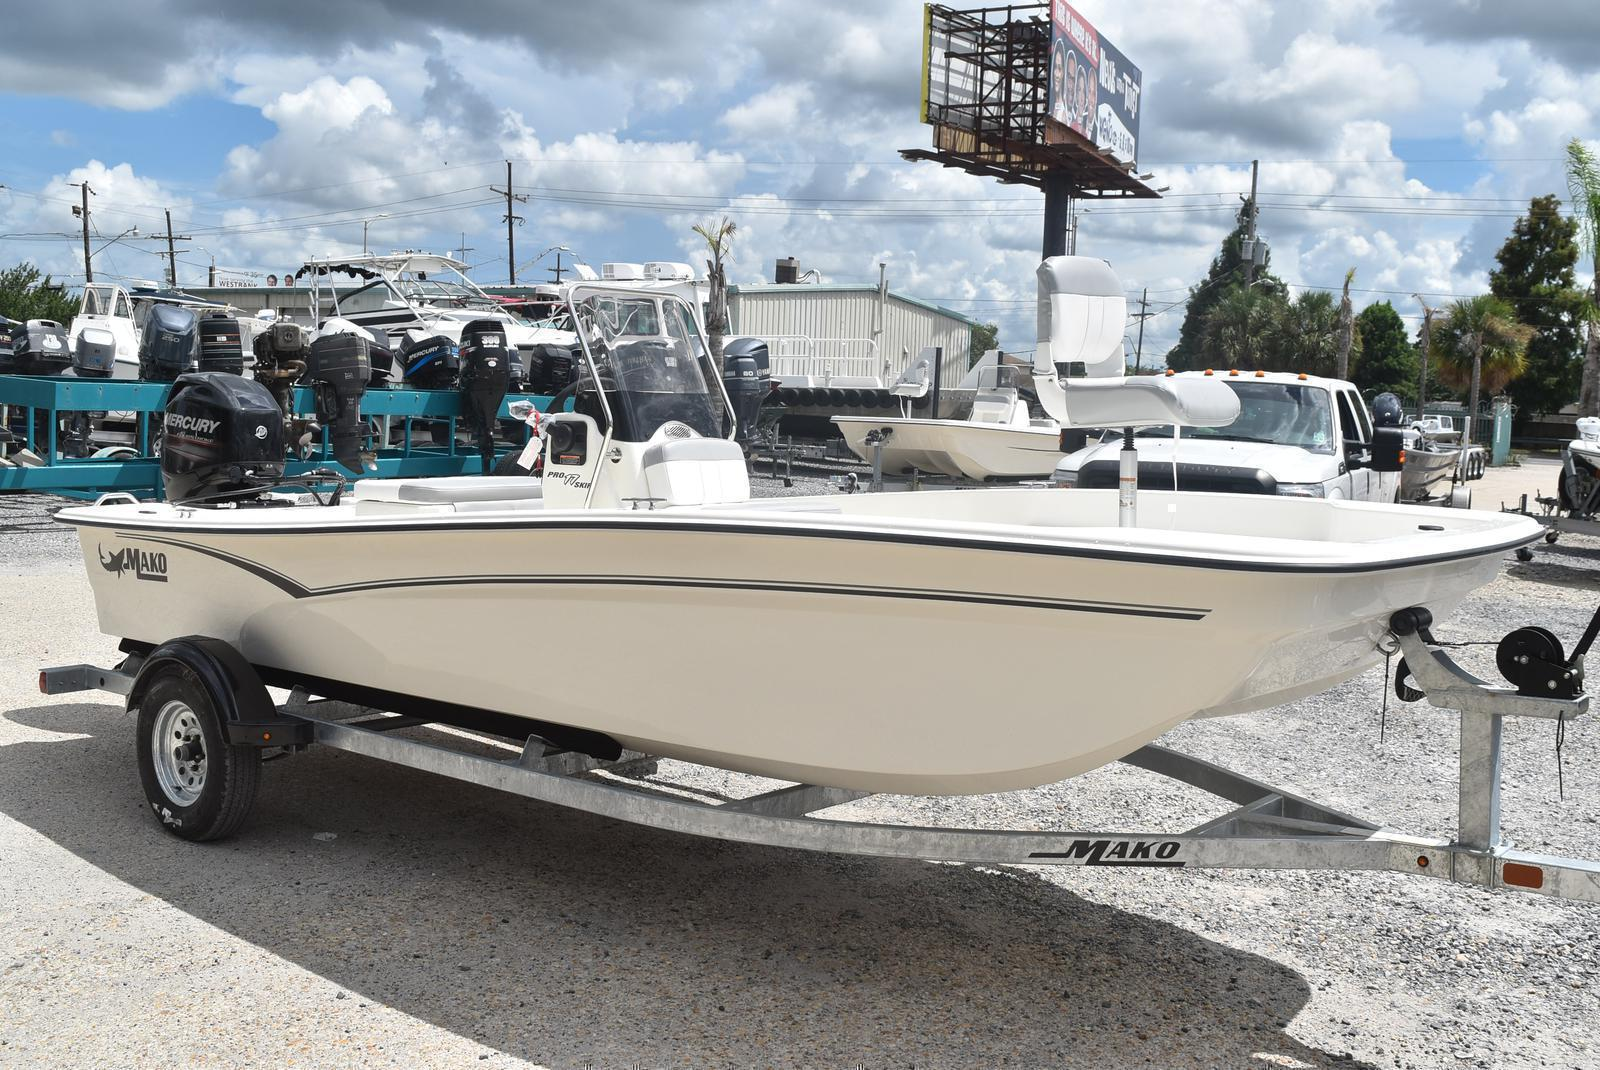 2020 Mako boat for sale, model of the boat is Pro Skiff 17, 75 ELPT & Image # 634 of 702